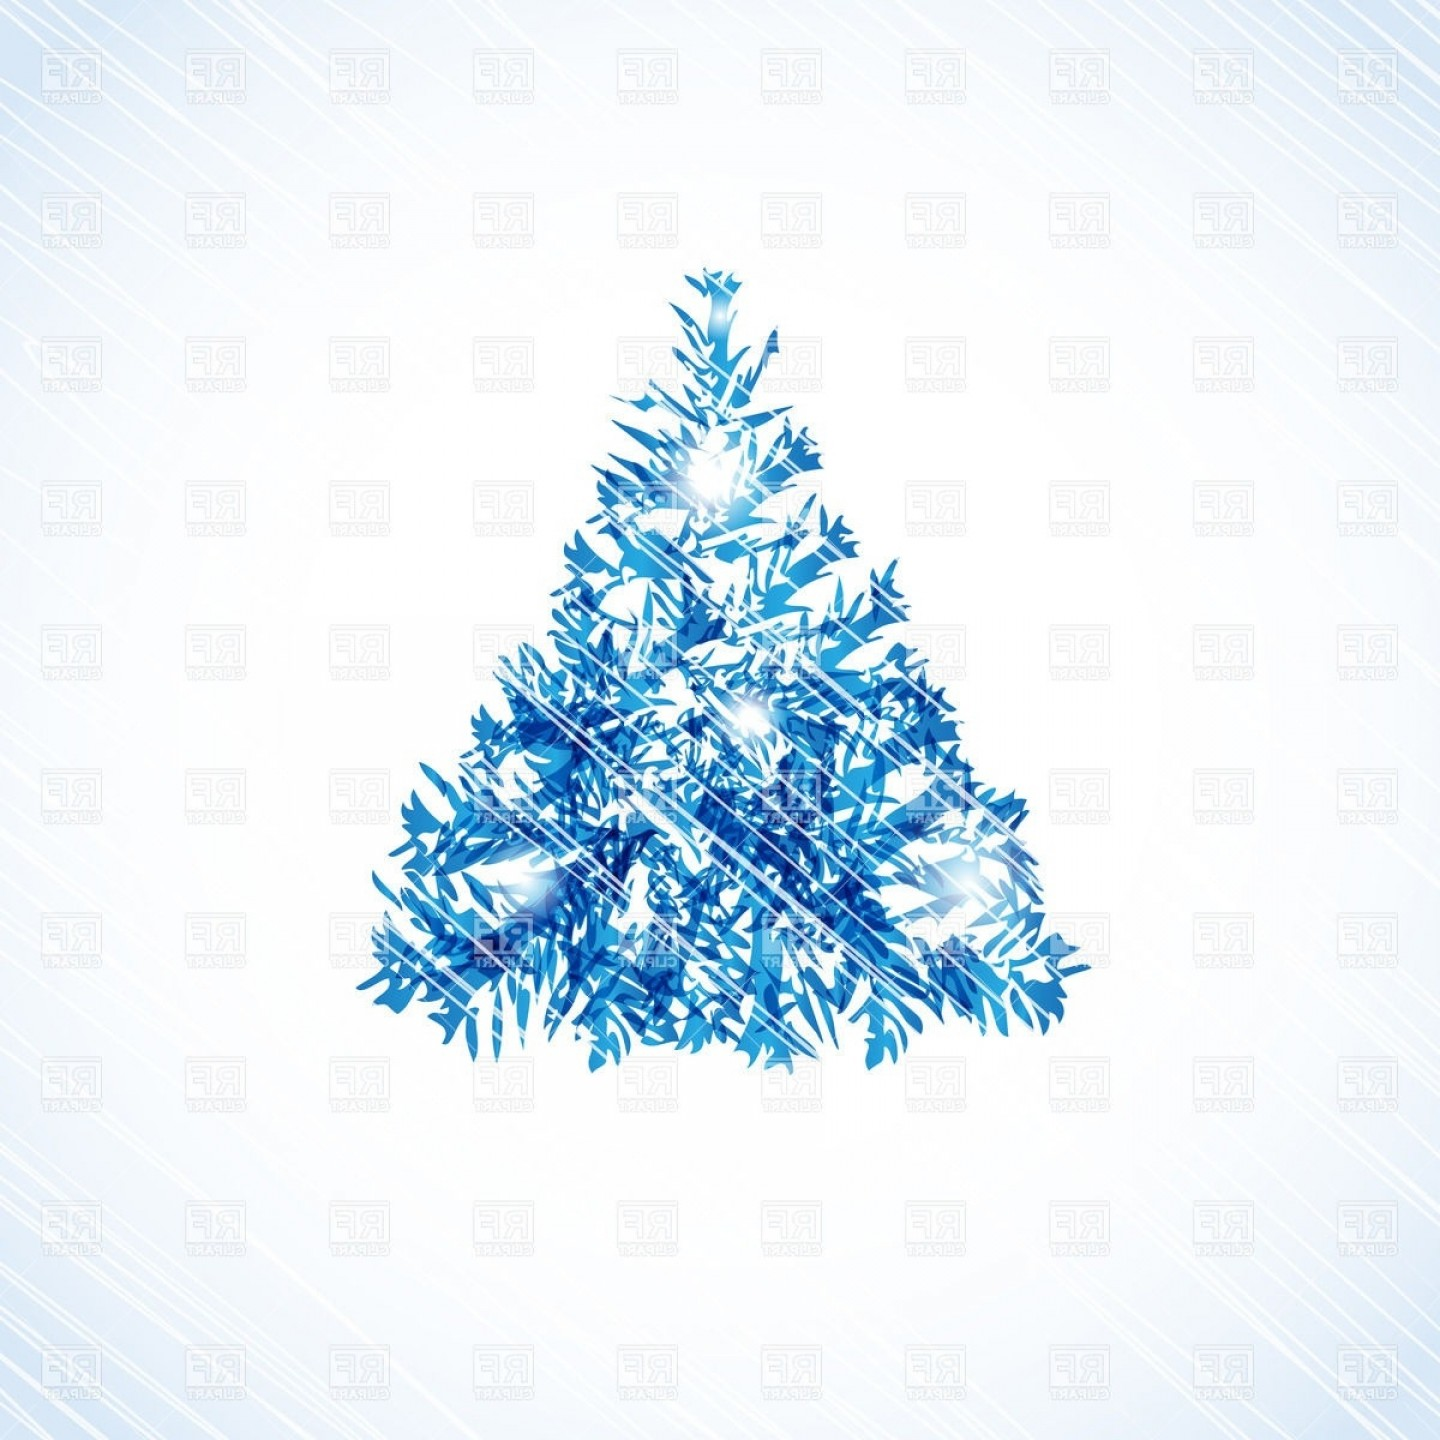 Christmas Tree Vector Illustration: Abstract Christmas Tree Vector Illustration Free Vector Graphics